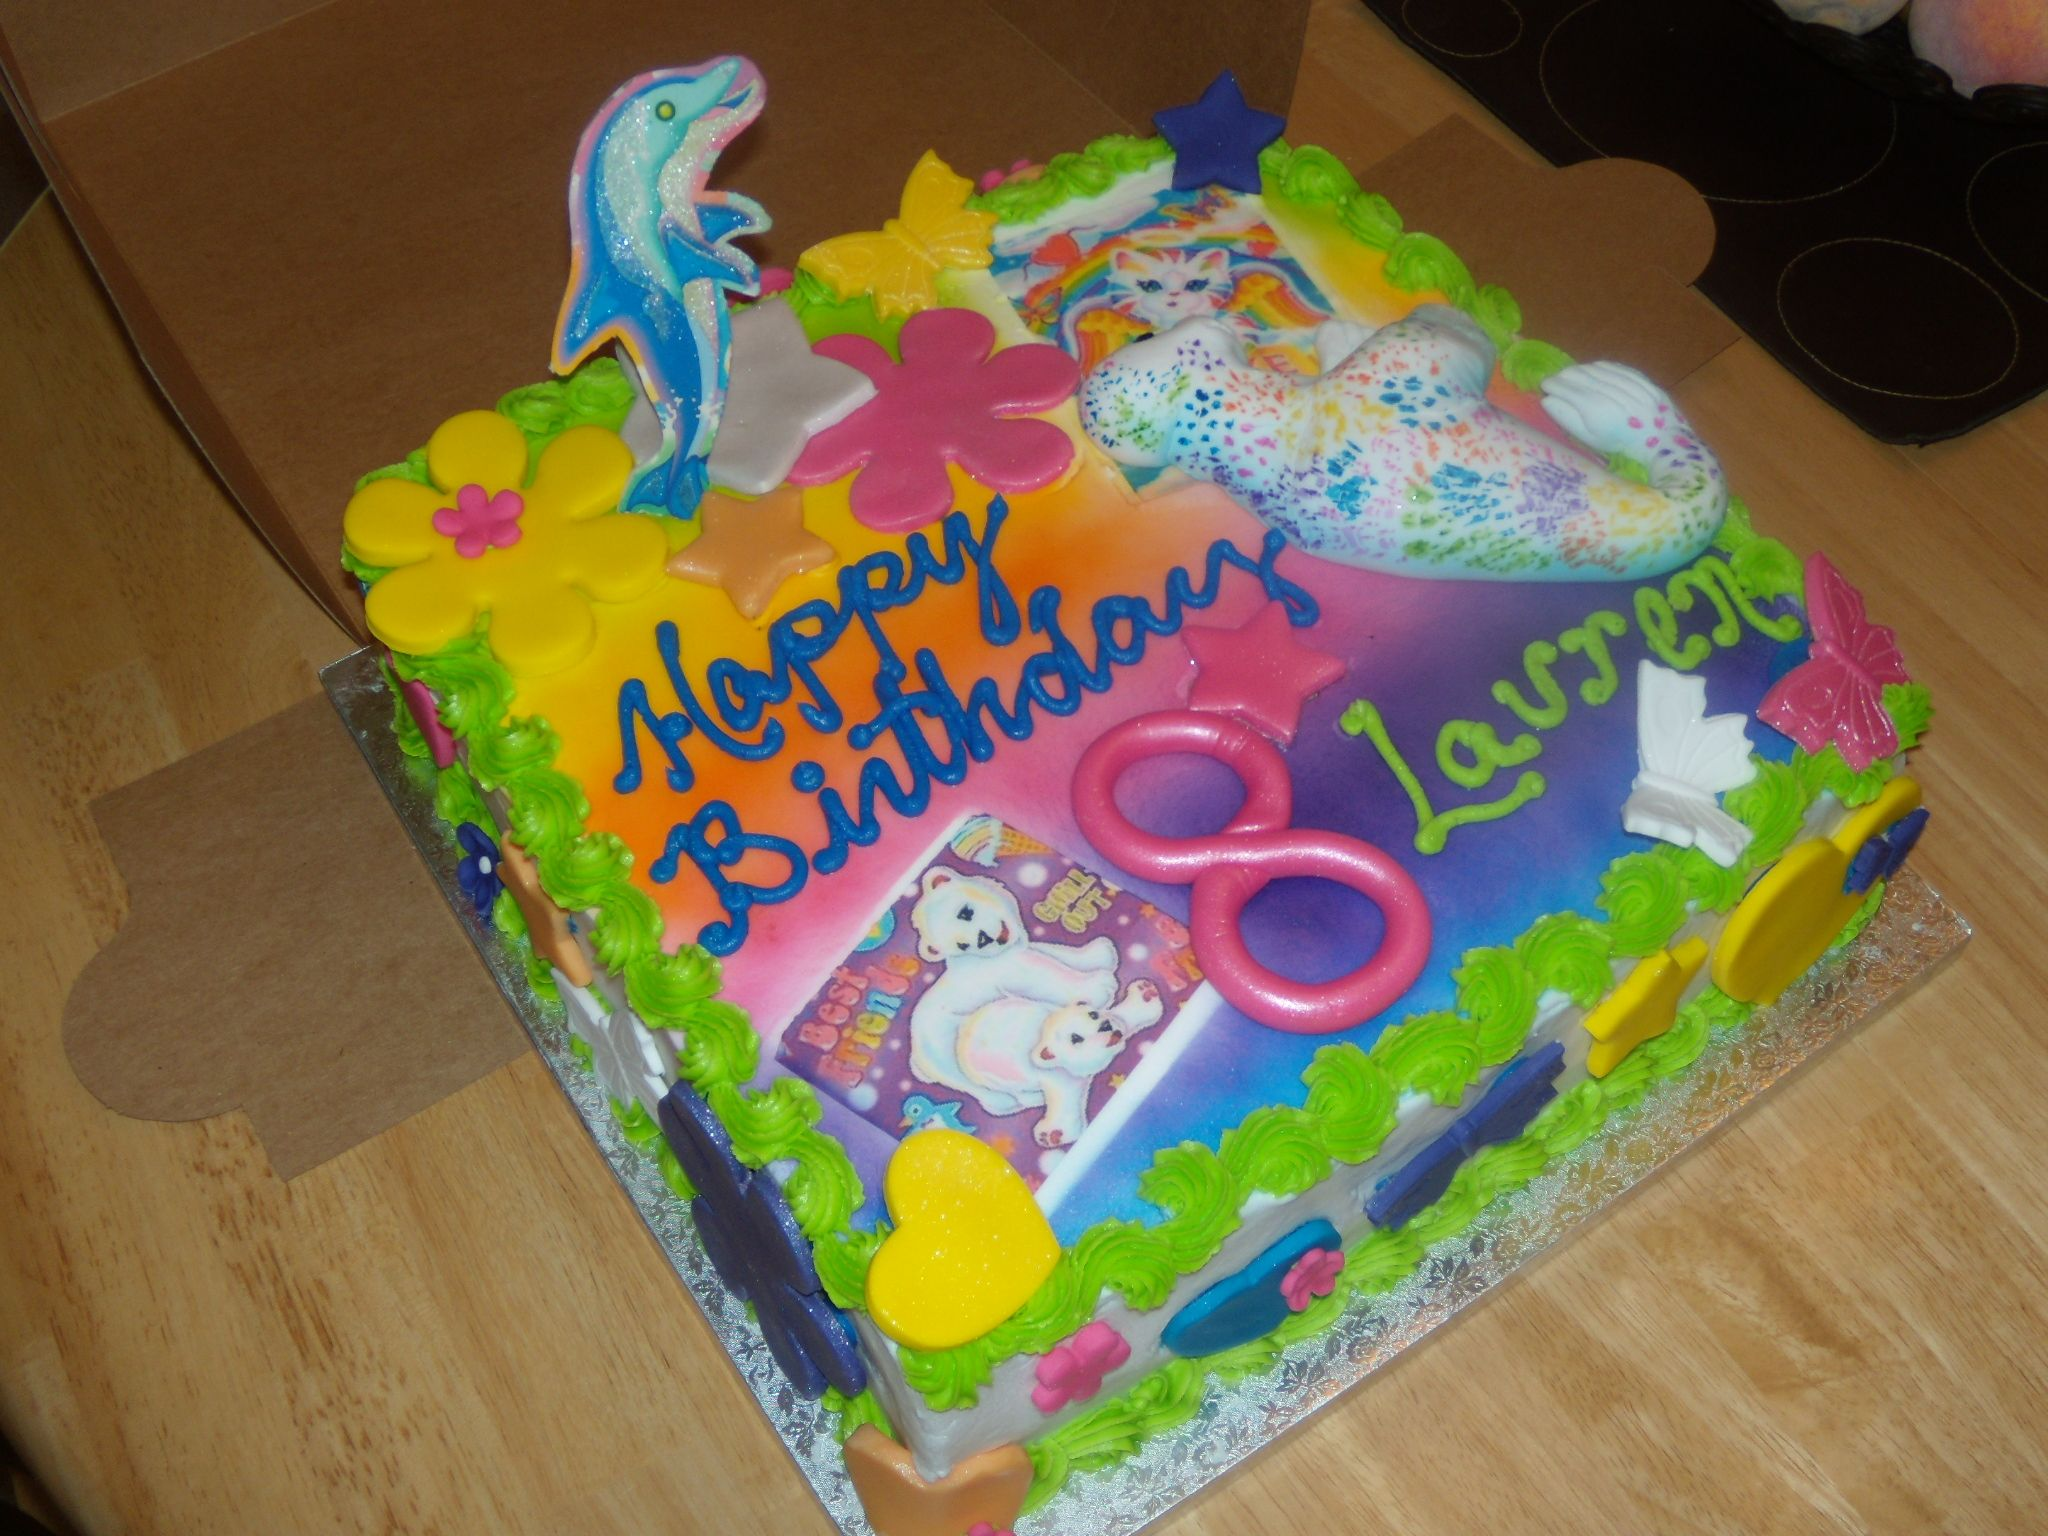 Lisa Frank Themed 2 Layer 12 Cake Very Colorful To Say The